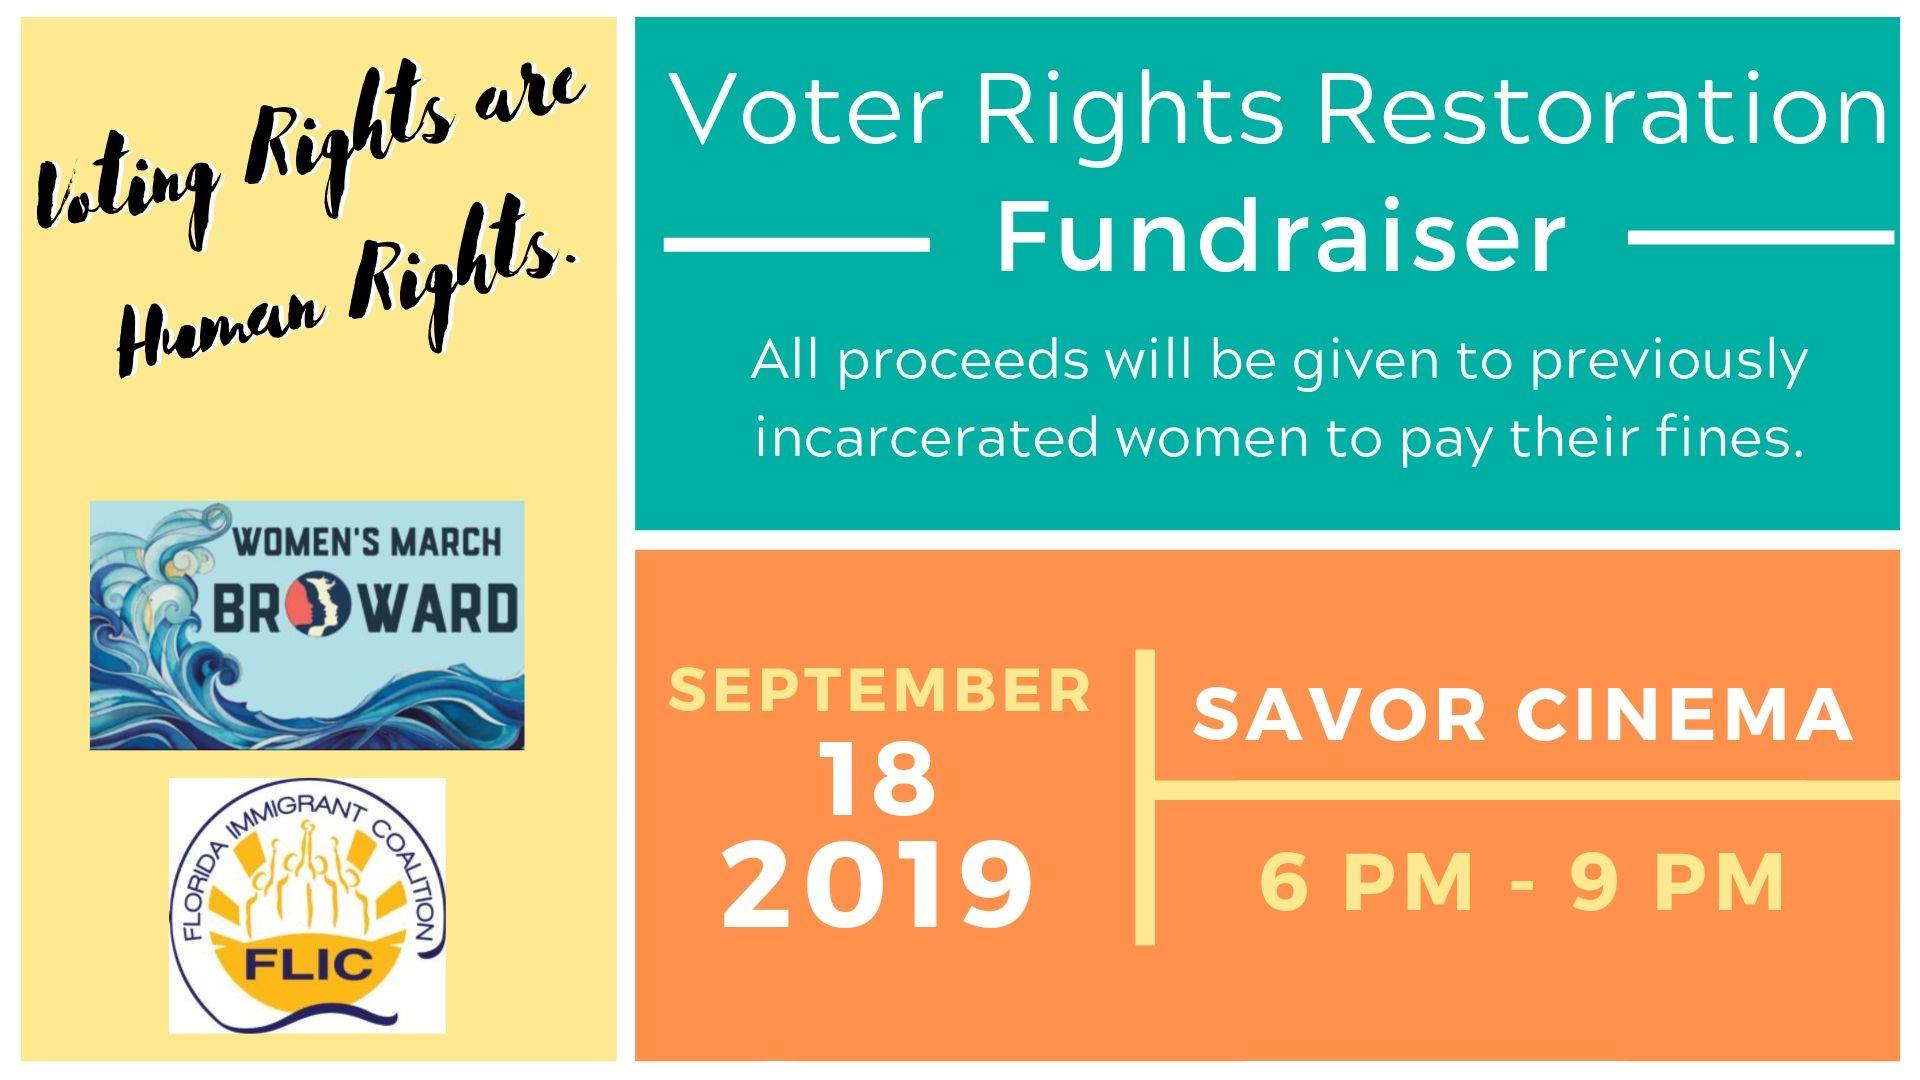 Voter Rights Restoration Fundraiser - Last November, Florida voters sent a message to the nation: Voting is a fundamental right that is essential for a successful democracy. On Nov. 8, 2018, 64 percent of Florida's voters voted in favor to amend the state's constitution to restore voting rights to U.S. citizens with prior felony convictions after they completed all terms of their sentence, including probation and parole. However, 2019 legislative session, legislators imposed new financial restrictions—such as fees unrelated to citizens' sentences—that would undermine the amendment. This poll tax will prevent hundreds of thousands of eligible Floridians from casting their ballots in 2020.With the help of you all, Women March-Broward is joining forces with FLIC and other community organizations to raise 5k to pay off the debt of previously incarcerated women to restore their RIGHTS to vote. Join us on Wednesday, September 18, 2019, at Savor Cinema from 6:00 pm - 9:00 pm to watch Rigged: The Voter Suppression Playbook movie and a discussion led by a panel of directly impacted returning citizens.*Early Bird Admission Tickets are available until September 6th: $15.00_________________________________________Agenda:6:00 - 7:00: Social Hour7:00 - 8:30: Movie Screening- Rigged: The Voter Suppression Handbook8:30 - 9:00: Short Discussion with panel of directly impacted returning citizensSnacks and refreshments, including alcoholic beverages are available for sale at the theatre.Please REGISTER AND RSVP via Eventbrite. Tickets are transferable but not refundable._________________________________________SPONSORSHIP INFO$250.00 Level:-5 Admission Tickets with VIP Seating at Fundraiser-5 Drink Tickets-Table space in courtyard to display organization info-Organization Name mentioned in Social Media and announced at Event$500.00 Level:-10 Admission Tickets with VIP Seating at Fundraiser-10 Drink Tickets-Table space in courtyard of venue to display organization info-Organization Nam